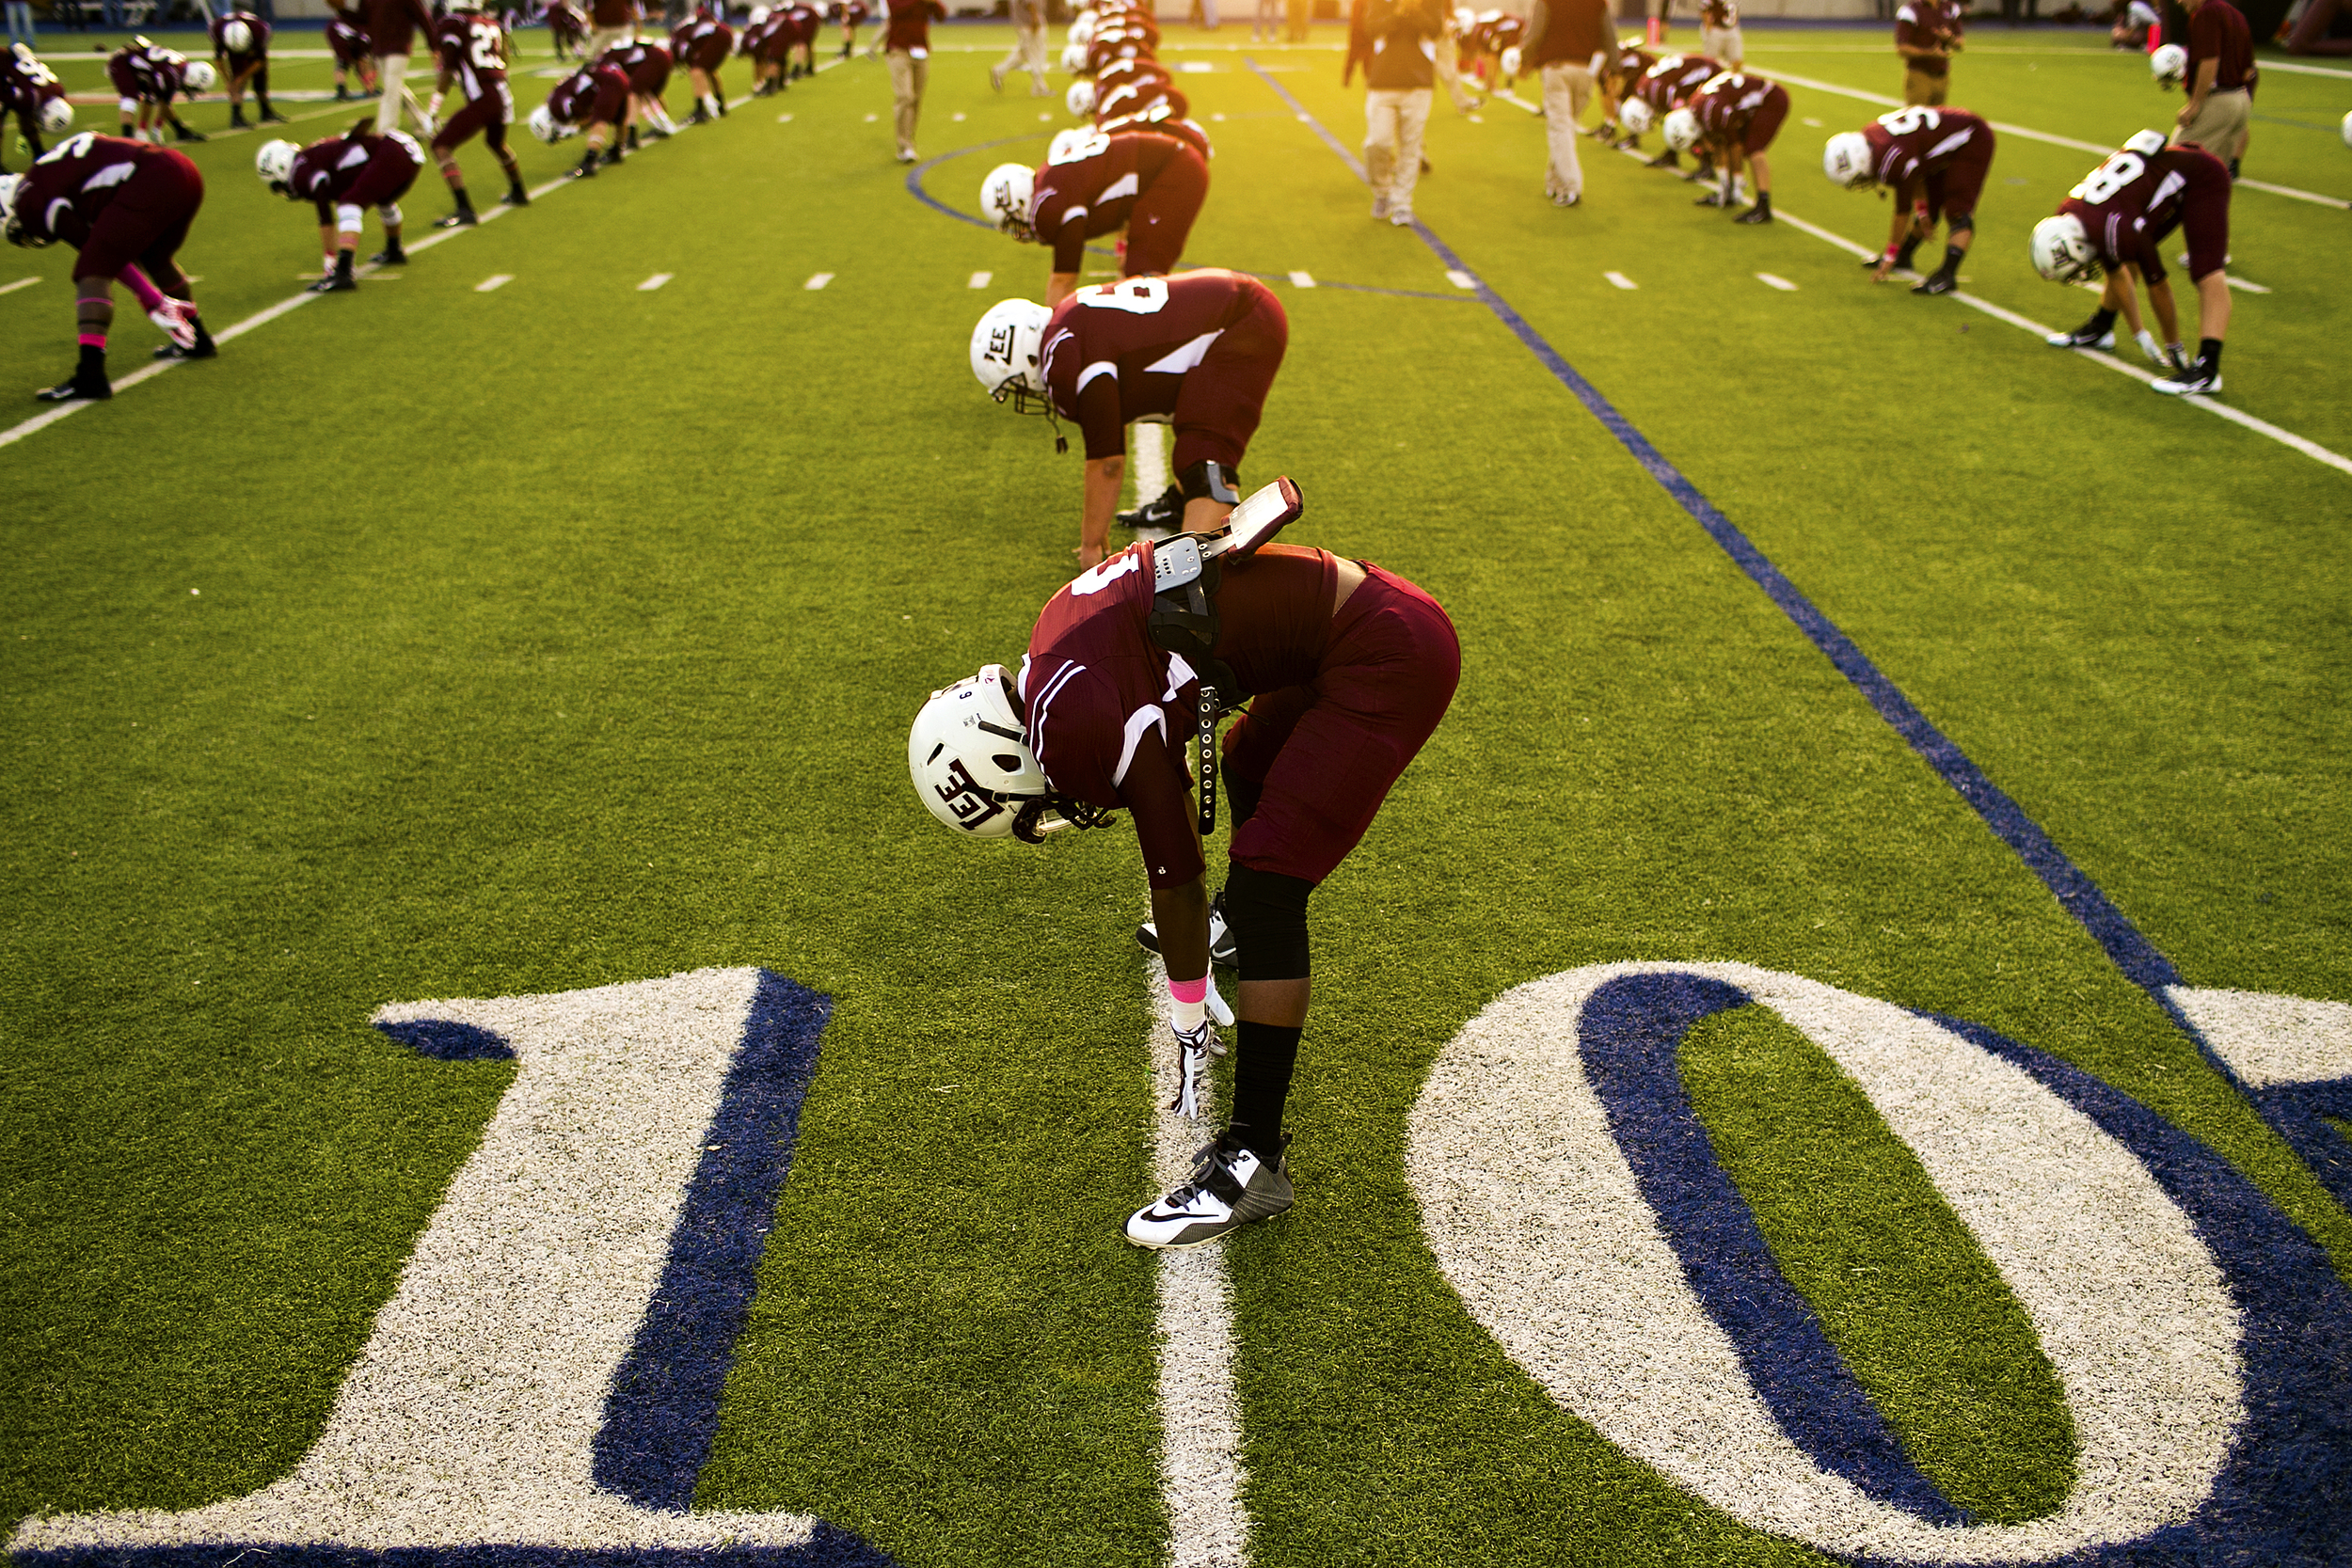 """Midland Lee senior defensive back Juwan Lee (6) and his teammates stretch prior to their rivalry game against the Odessa Permian Panthers on Oct. 12, 2014 at Grande Communications Stadium in Midland, Texas. The Panthers beat the Rebels 45-28 in this year's installment of one of the most storied rivalries in high school football nationwide. While the rivalry is renowned for being a central point in H. G. Bissinger's book, and subsequent movie, """"Friday Night Lights,"""" the Permian-Lee game raised to national prominence after a 20-year stretch from 1980 to 2000 in which both schools were in the running for the state championship seemingly every year. During that stretch, Permian won the title four times, with Lee claiming three championships and each school claiming a national championship title. Although both schools are far removed from their heyday as perennial state contenders, the annual game still draws over ten thousand attendees every year and is the most important game in both teams' schedules."""